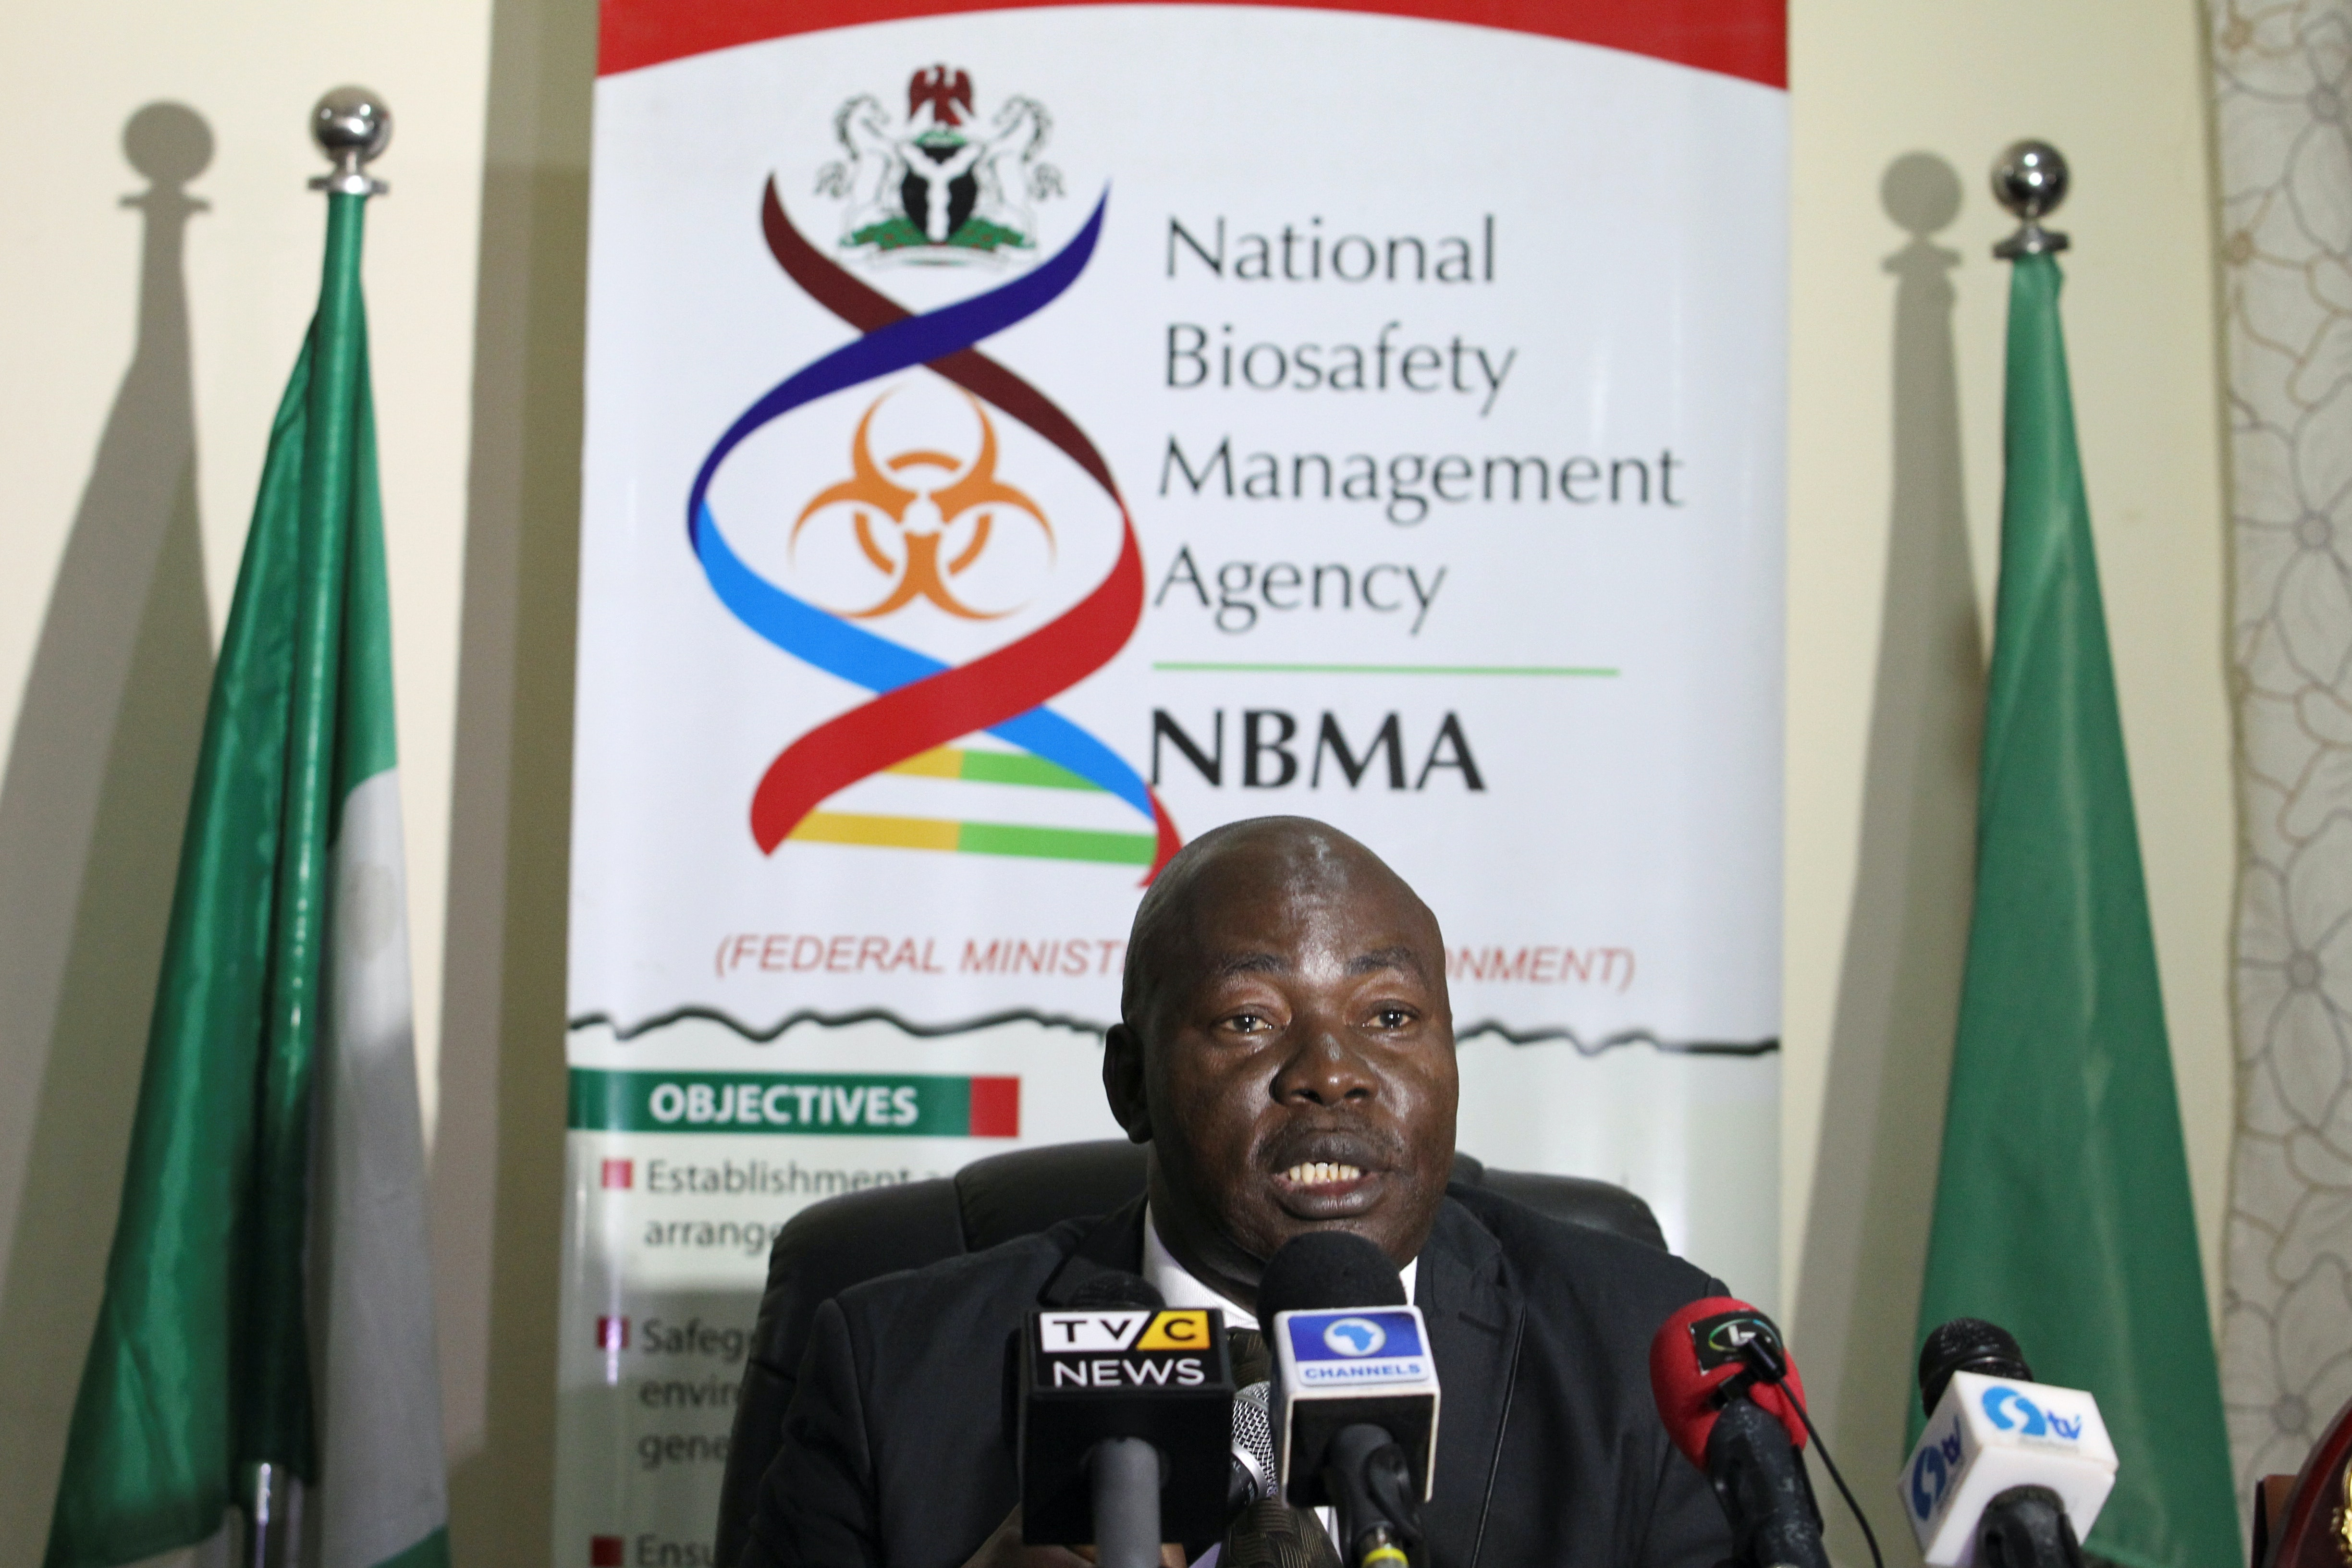 National Biosafety Management Agency Director General Rufus Ebegba speaks during a press briefing, denying the importation or release of any GMO 'poison rice' into the Nigerian market in Abuja. Photo credit: Reuters